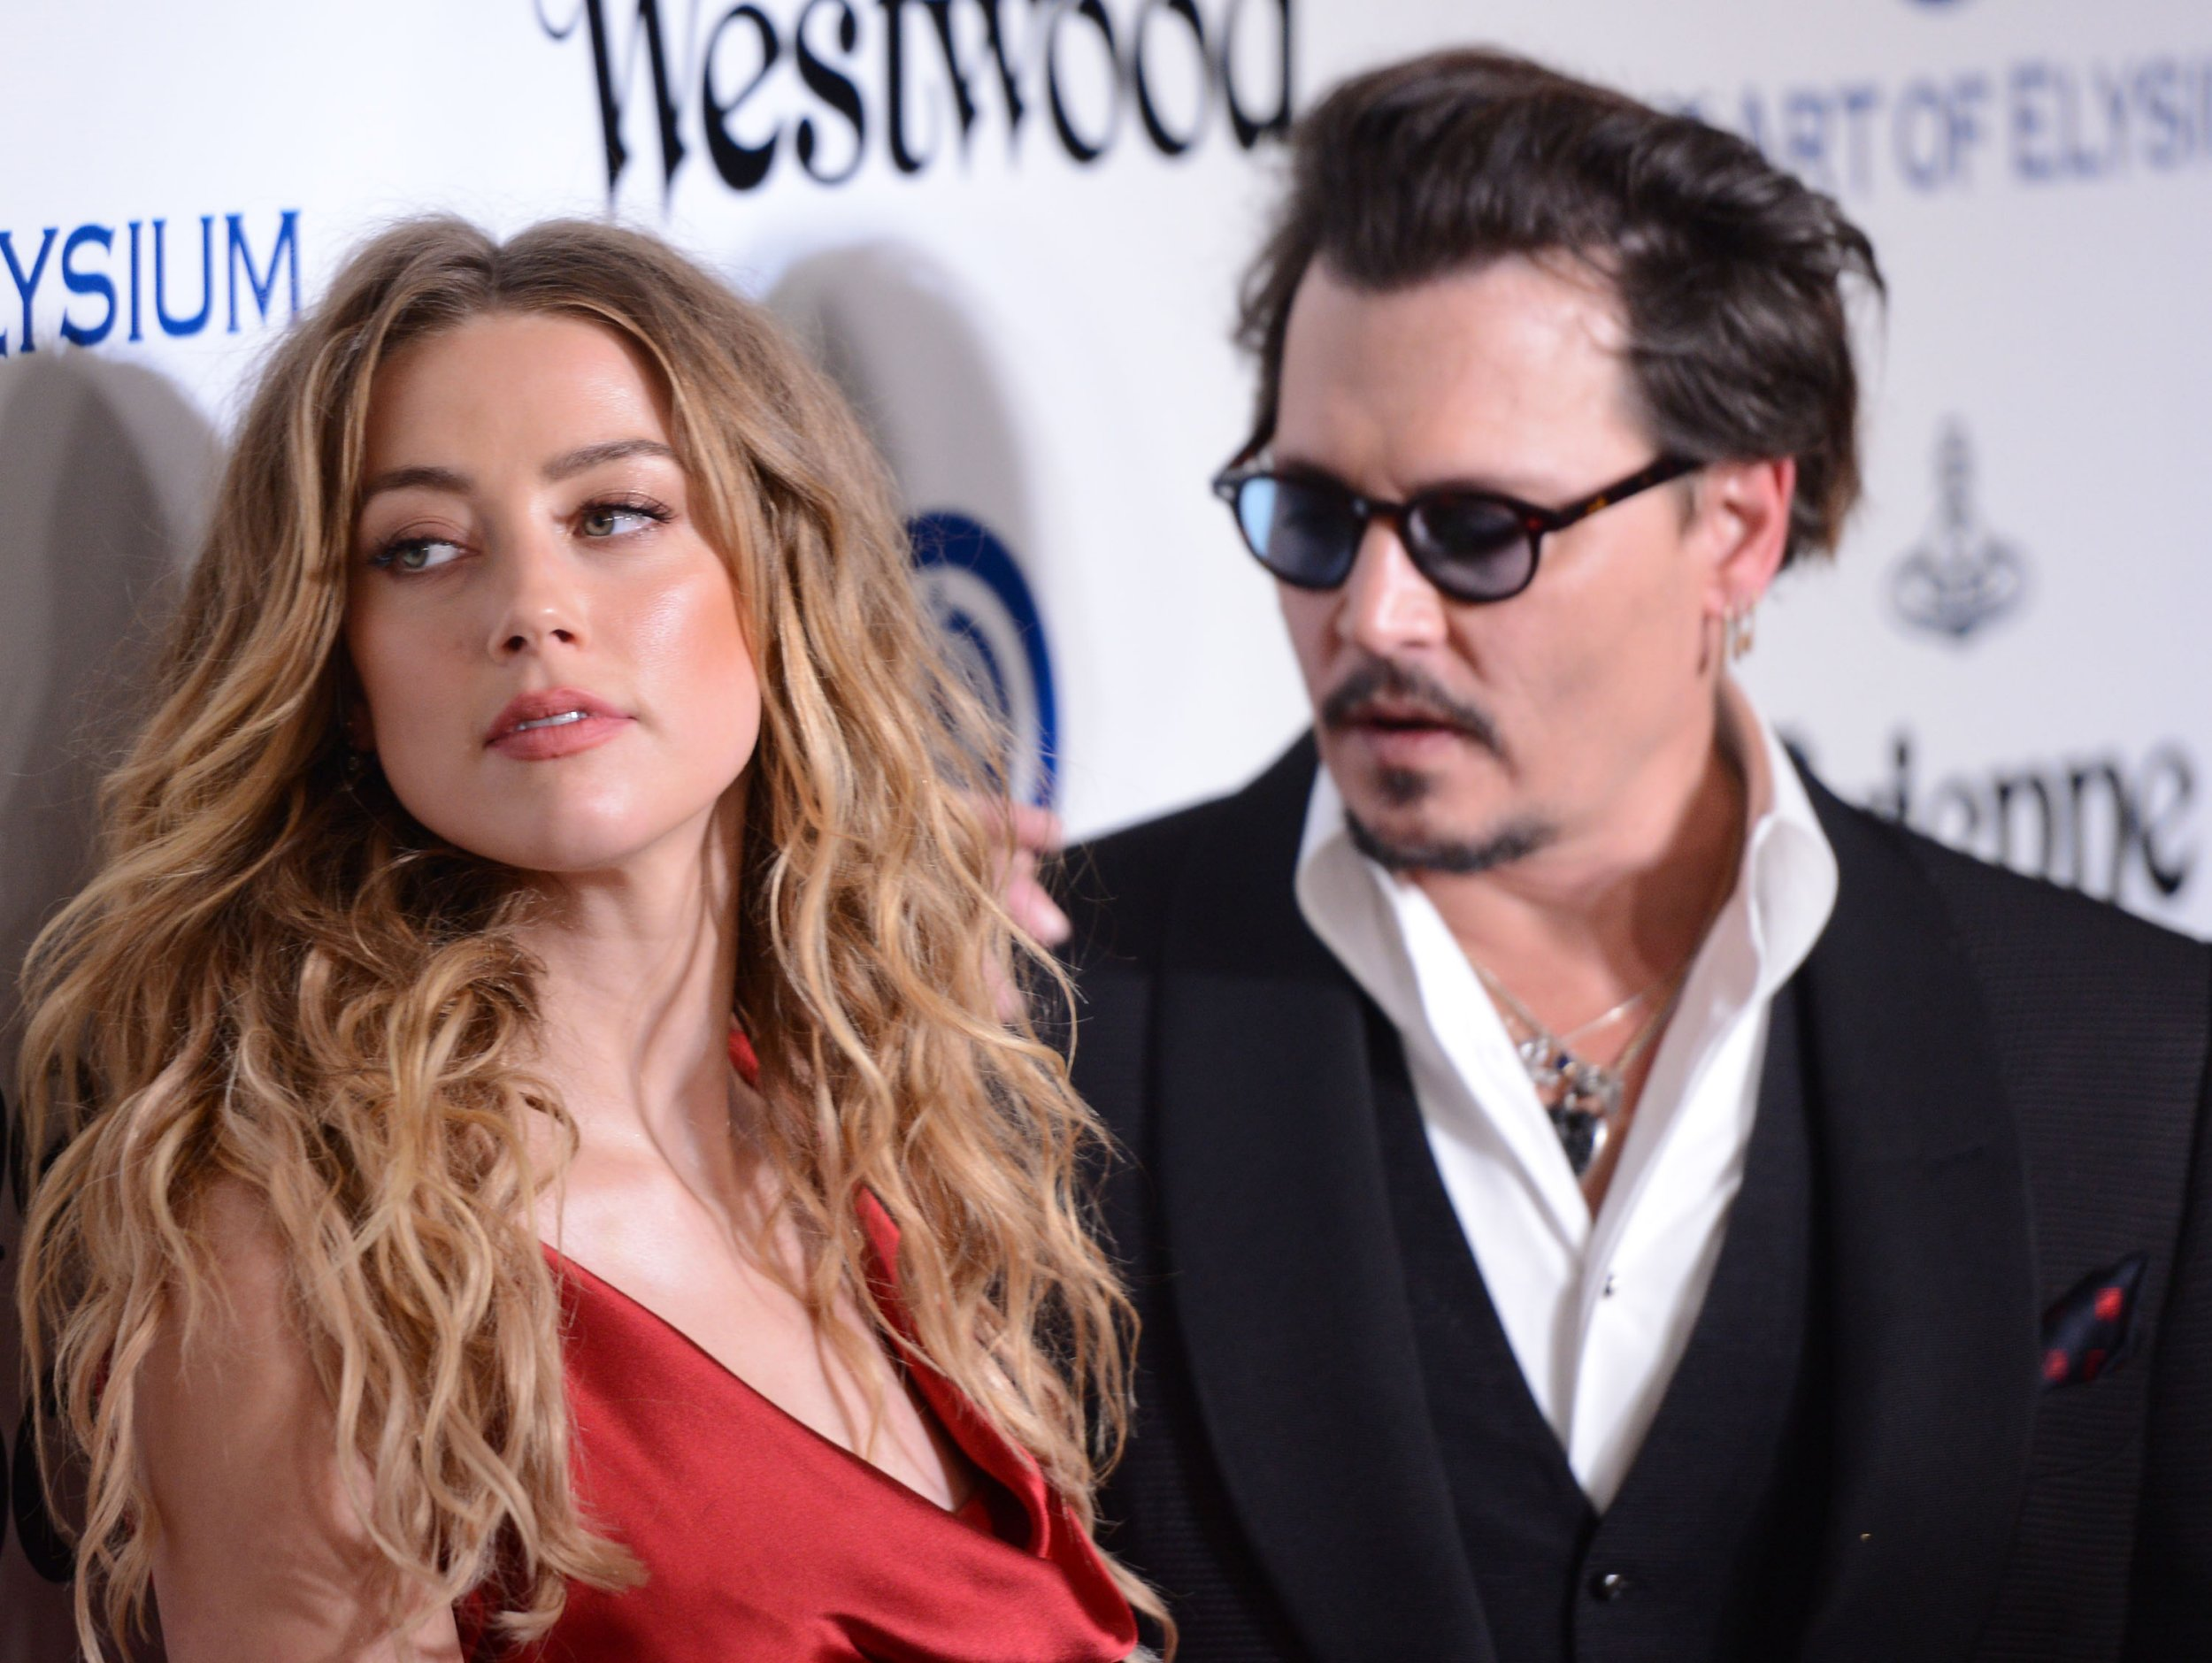 Amber Heard and Johnny Depp's friend opens up about what it was like to live with couple for a year